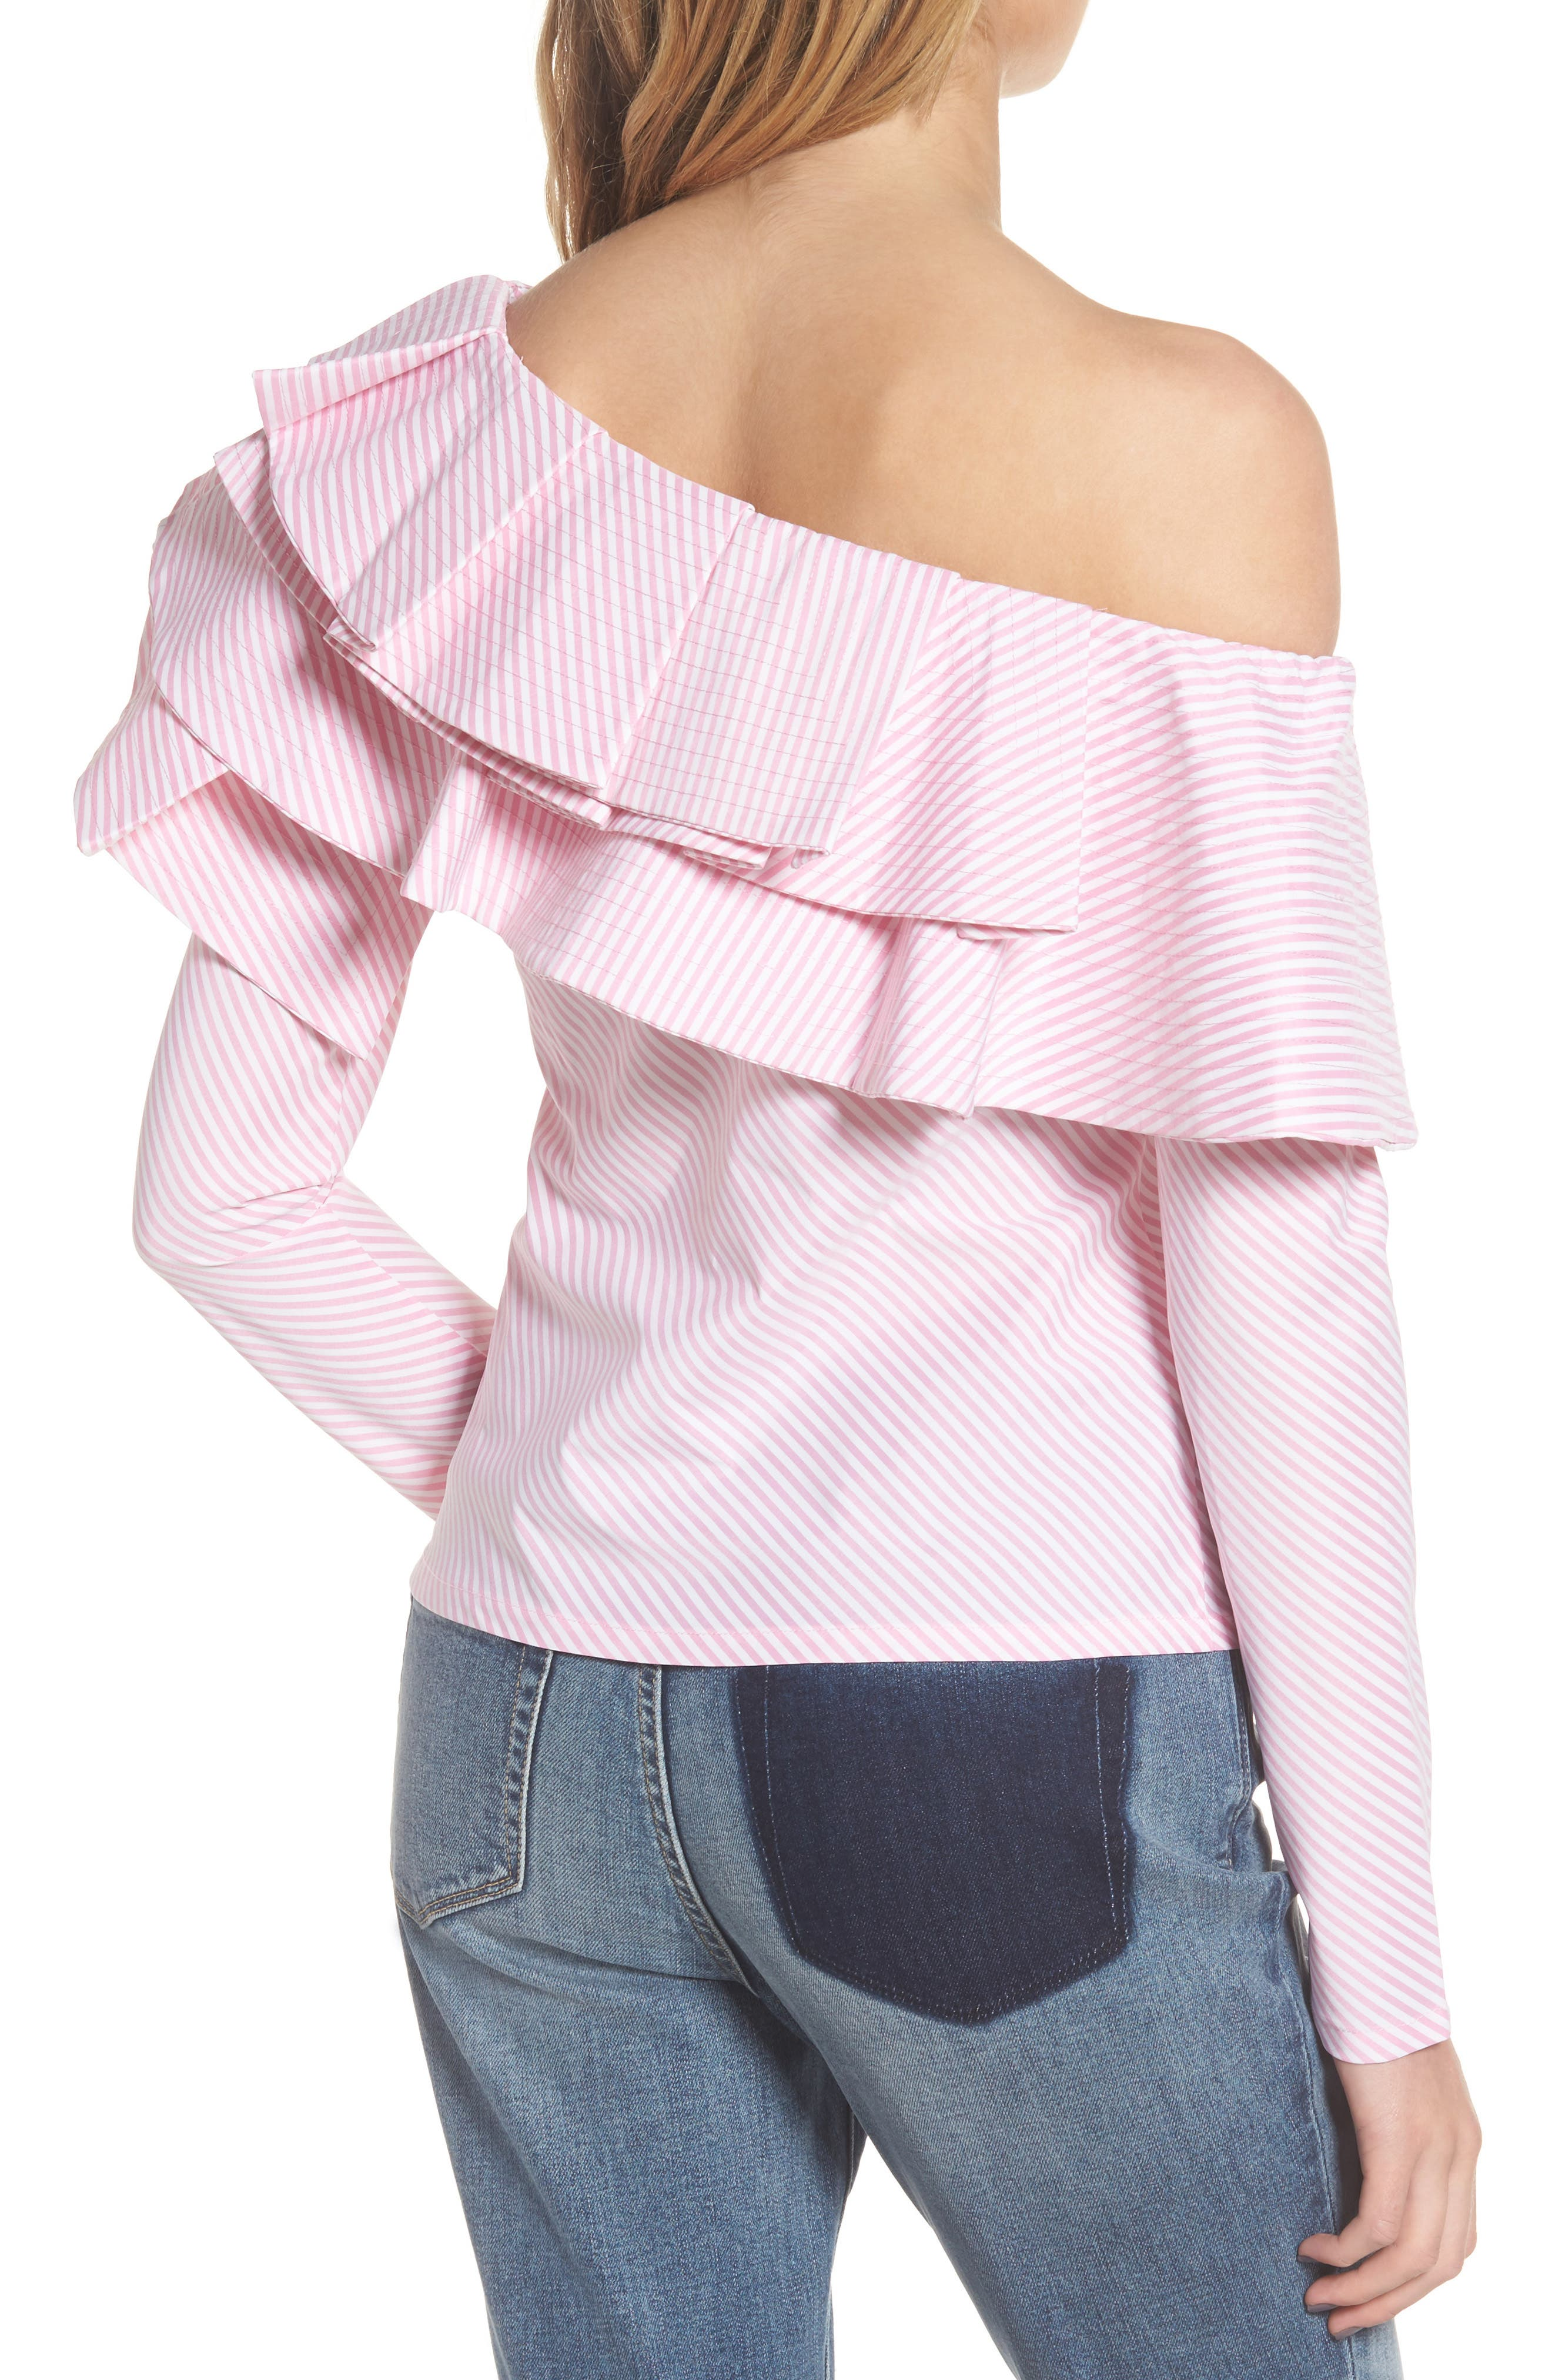 Think Fashion One-Shoulder Top,                             Alternate thumbnail 2, color,